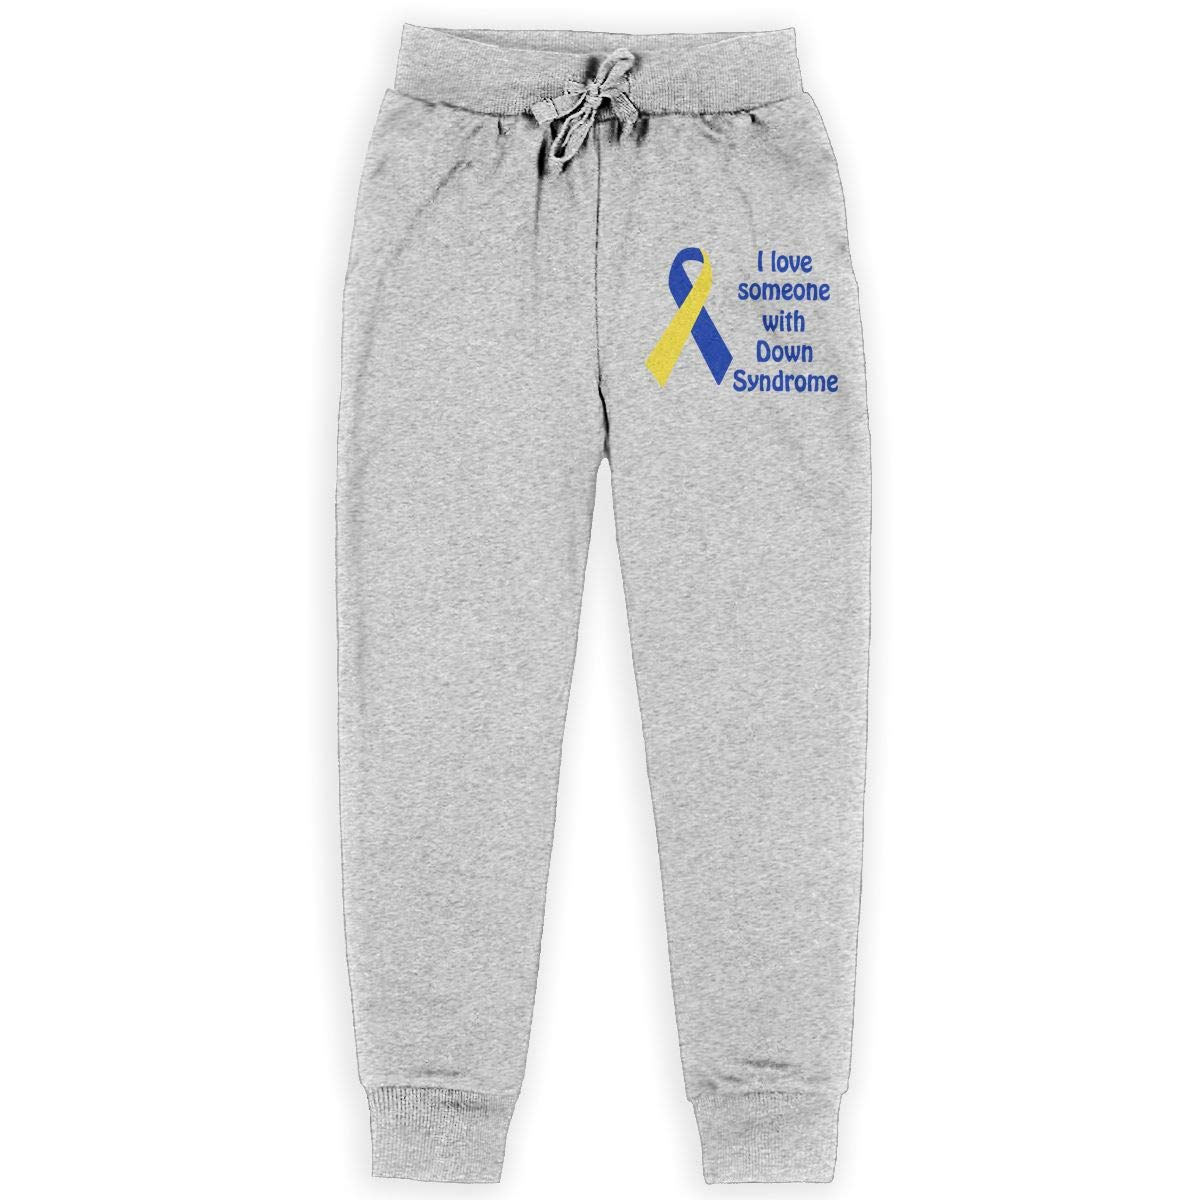 Boys Sweatpants I Love Someone Down Syndrome Active Pants